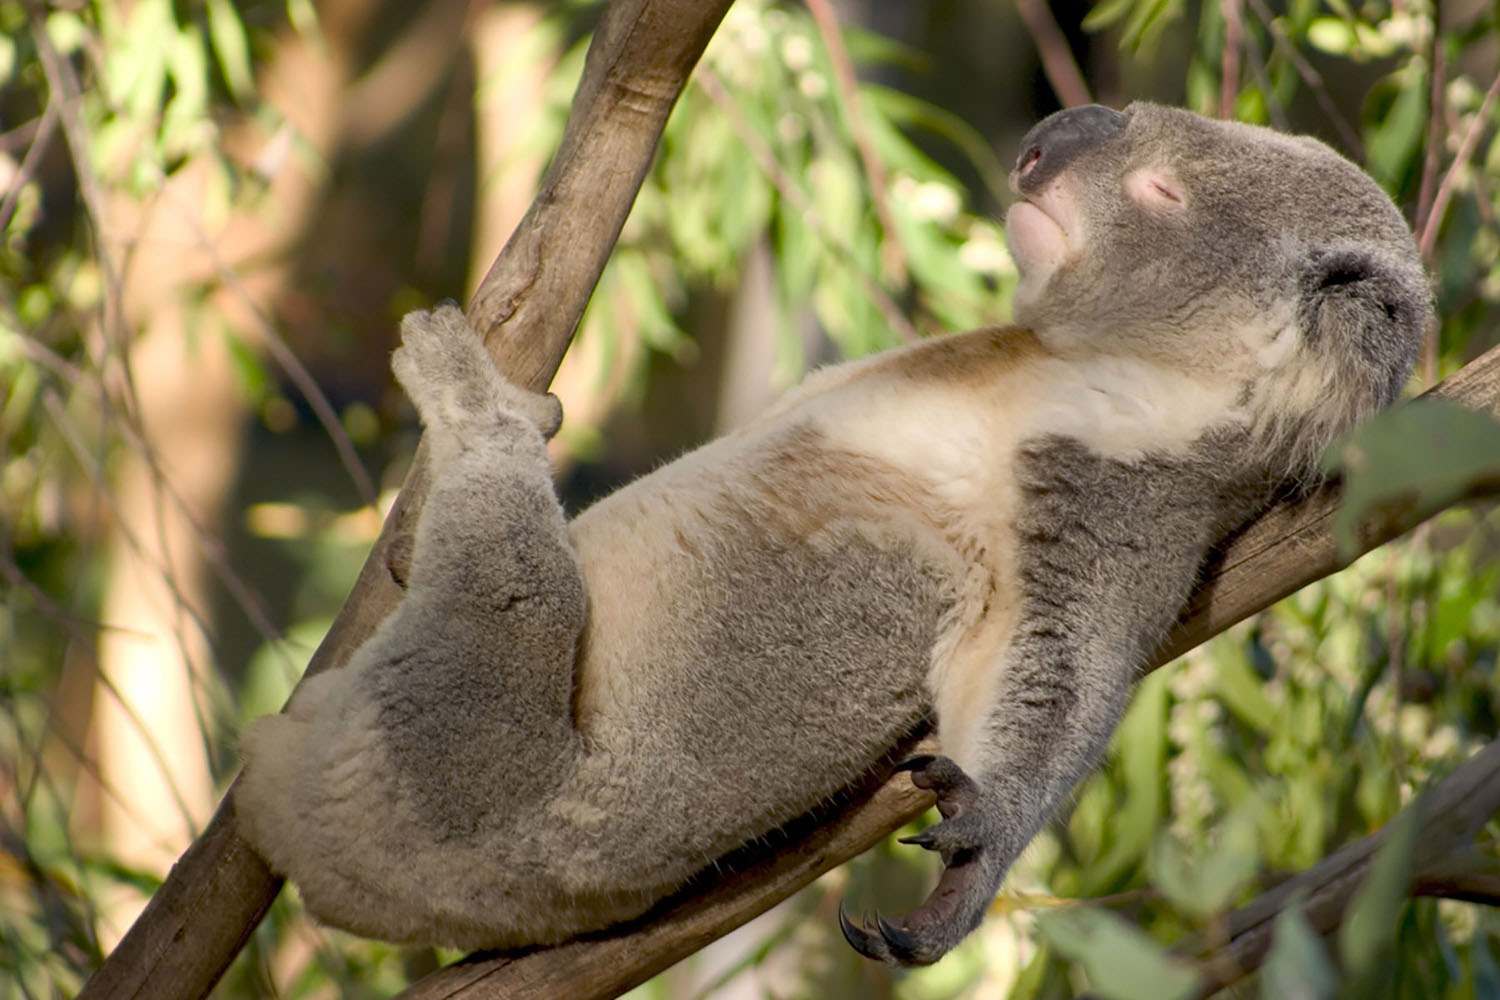 A koala relaxes in a tree